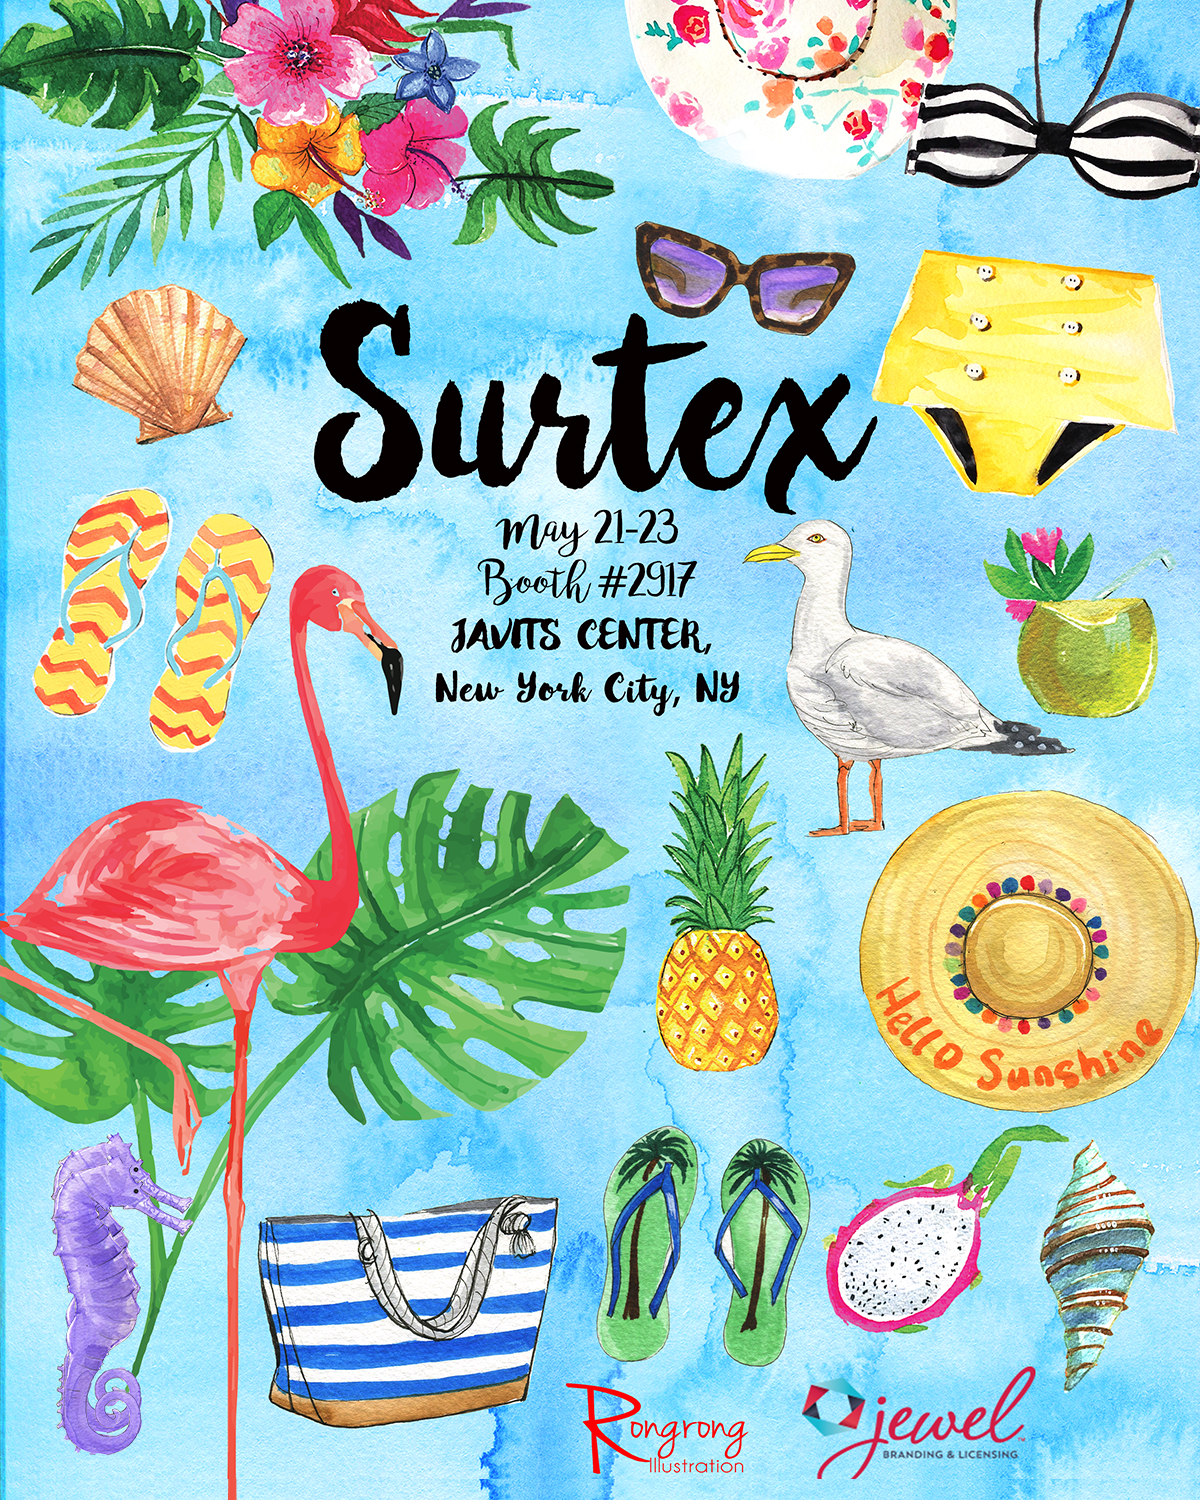 Rongrong DeVoe art licensing poster for Surtex show 2017